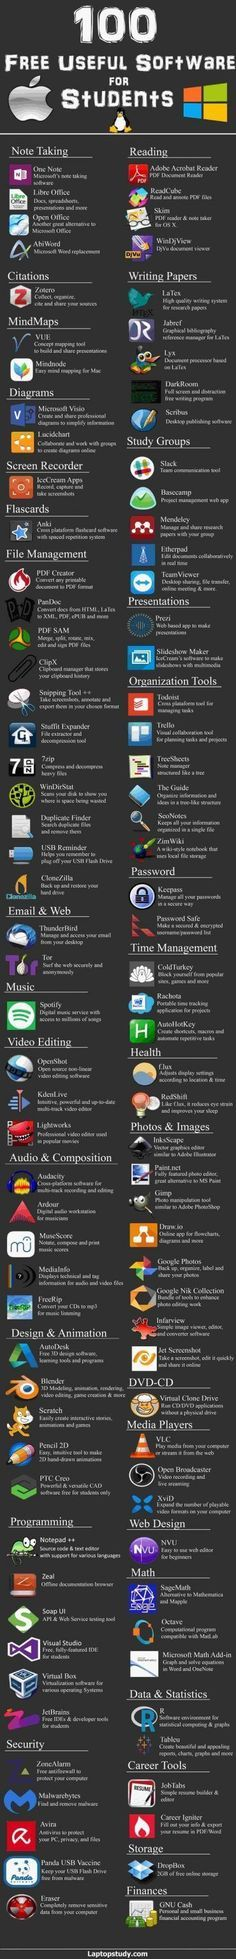 Useful Graphic: 100 Free Online Resources For Students by Ashley McCann Thanks to the internet, we have an entire world of information and resources at our fingertips – and sometimes that feels like both a blessing and a curse. Sure, we have access to archives, databases, tools, and up-to-the-minute commentary on current events, but finding …